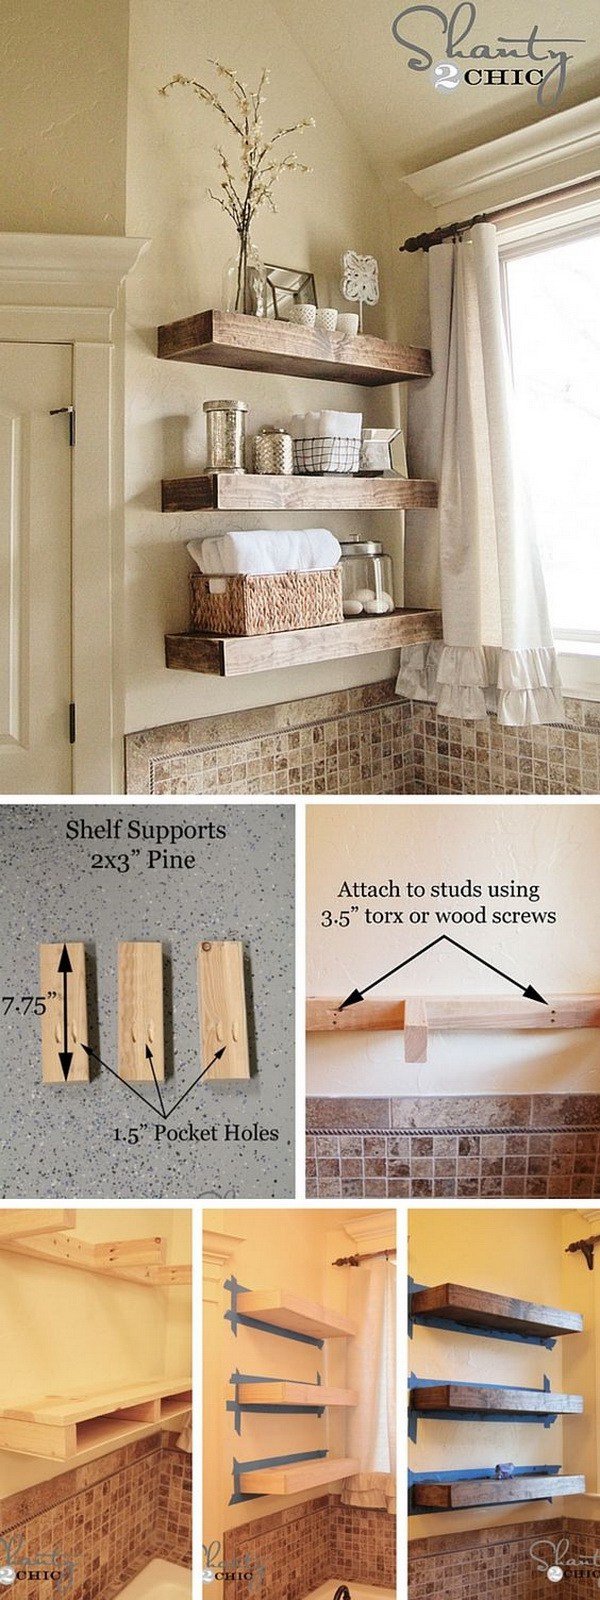 Easy DIY Floating Shelves. Wall mounted floating shelves are a great and easy way to use vertical space and add storage to any room.